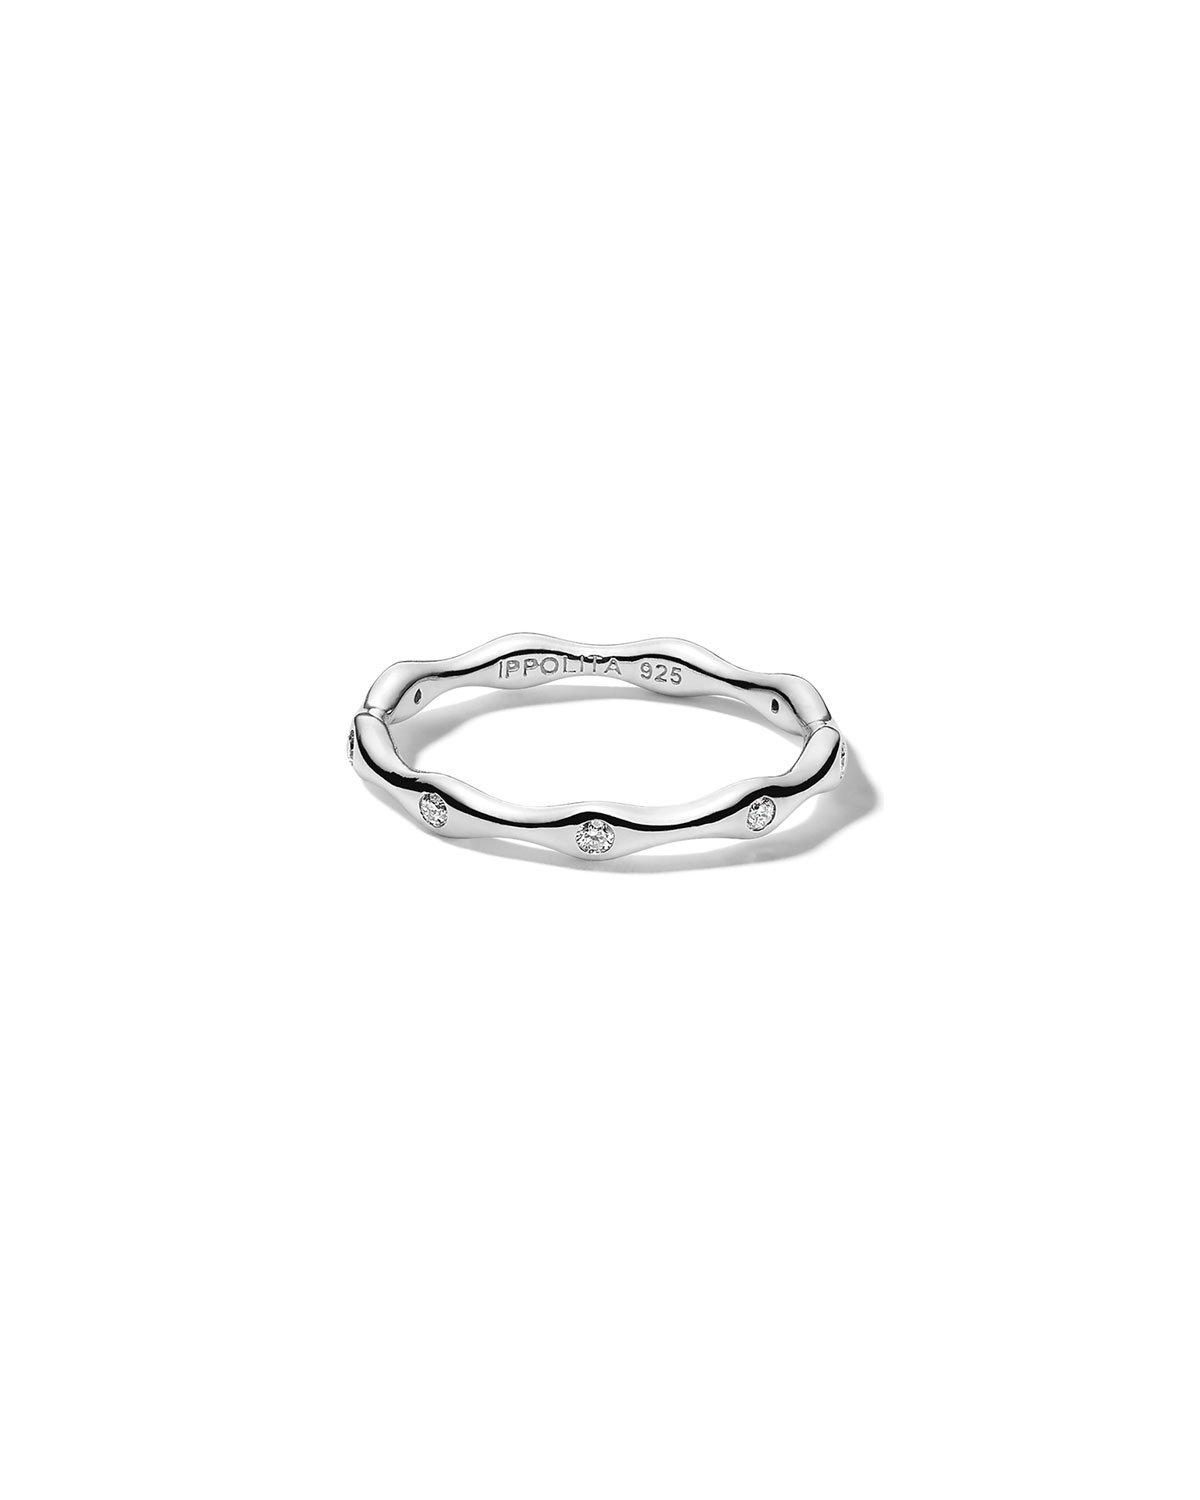 Ippolita Stardust Starlight 9-Station Band Ring in Sterling Silver with Diamonds, Size 7